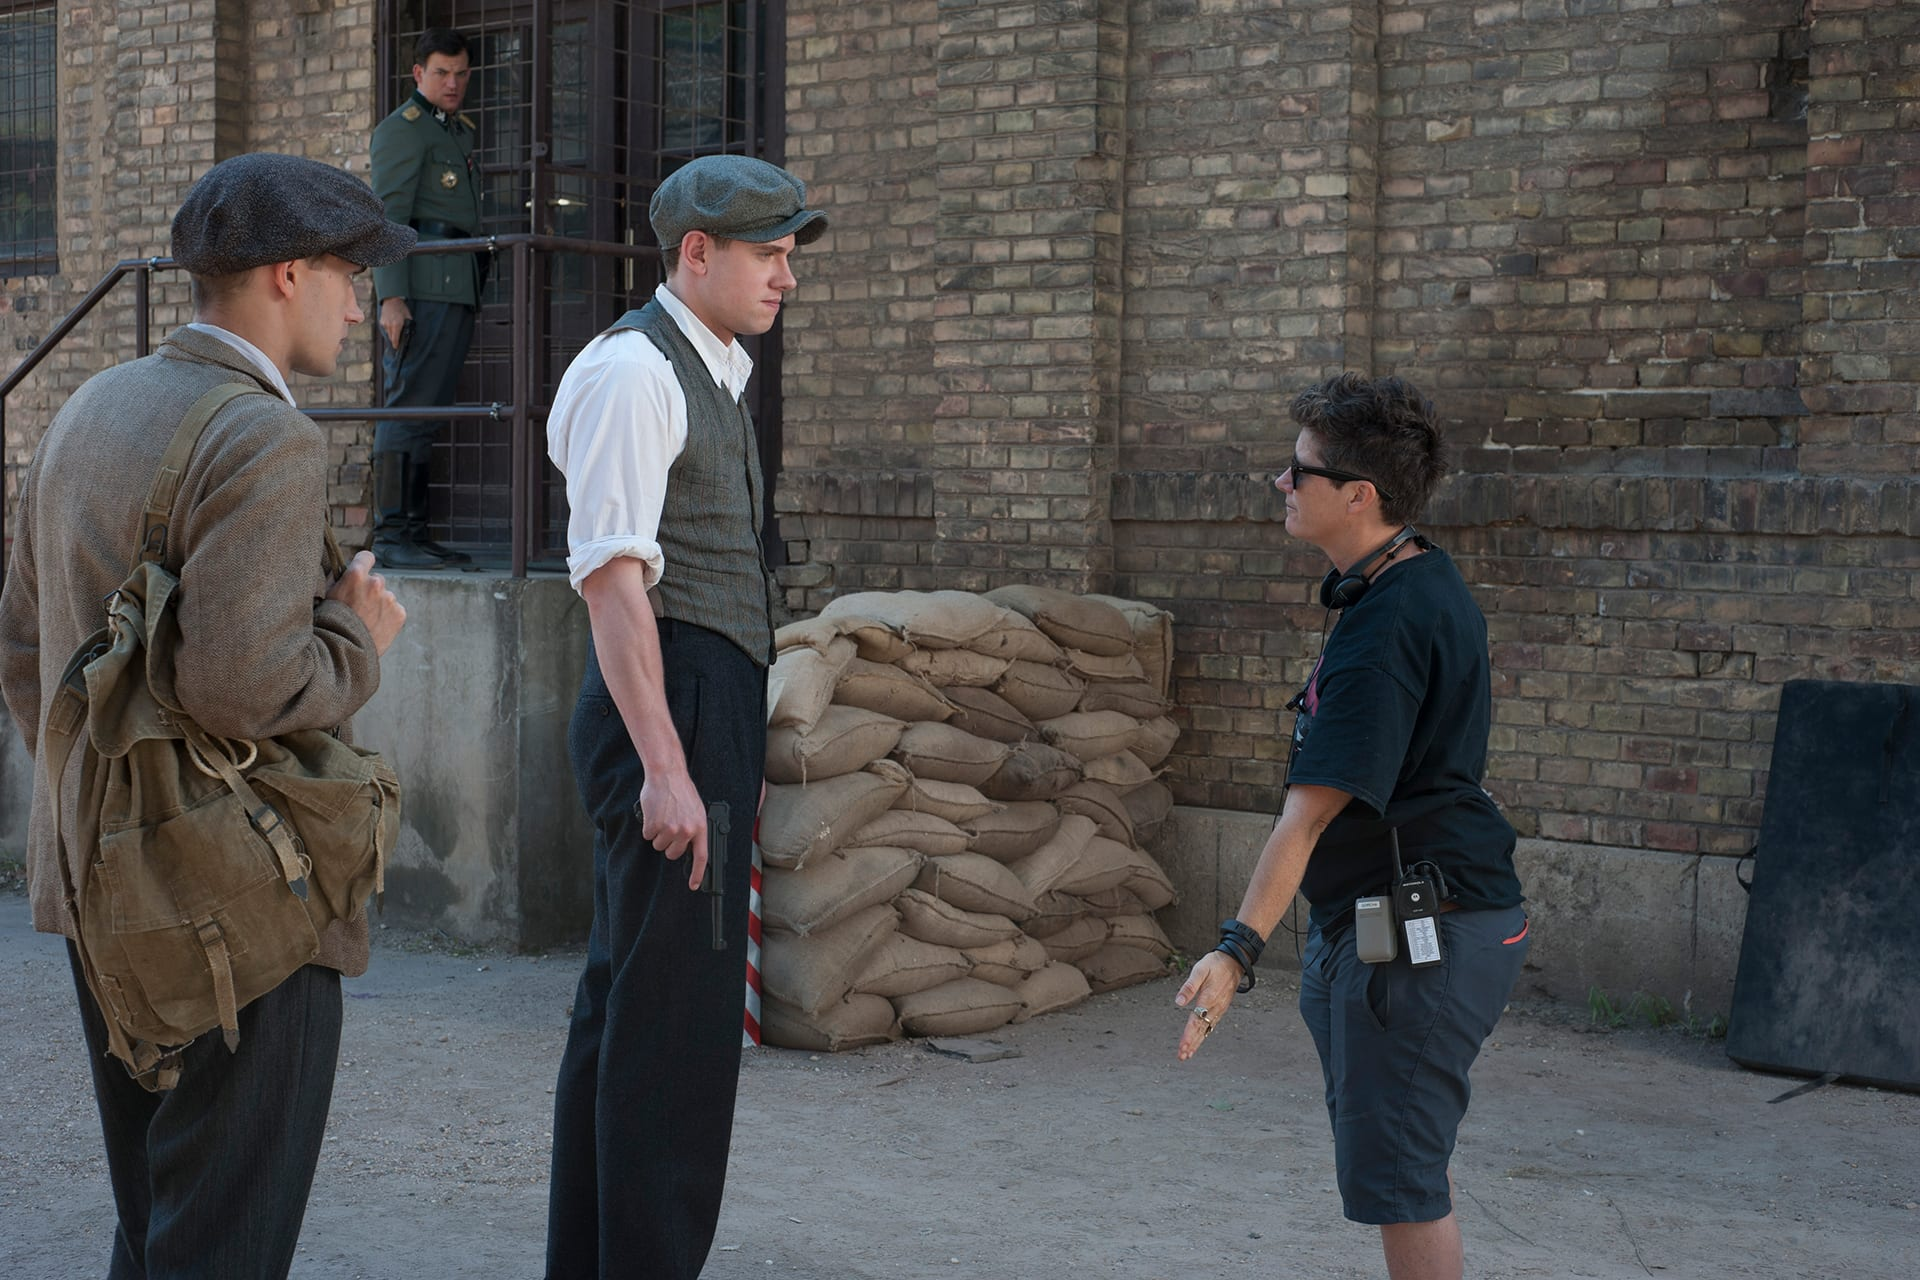 Behind the scenes on the set of X Company Season 3 with 1st AD Sorcha Vasey, Tom Brittney (David), Lewis Rainer (Peter) and Torben Liebrecht (Faber) in the background.